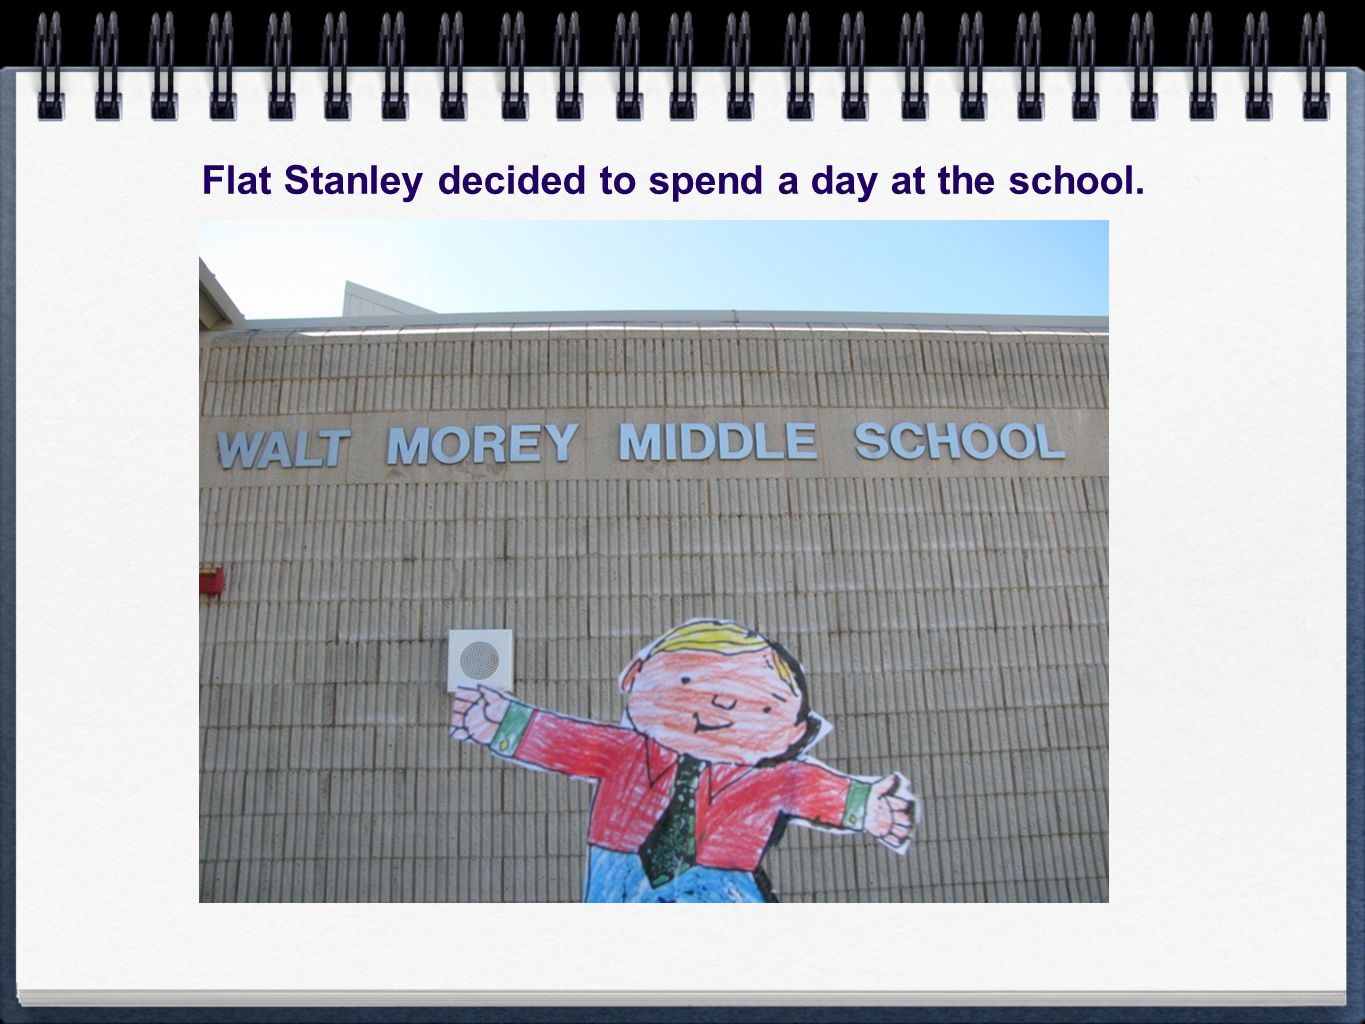 Flat Stanley decided to spend a day at the school.